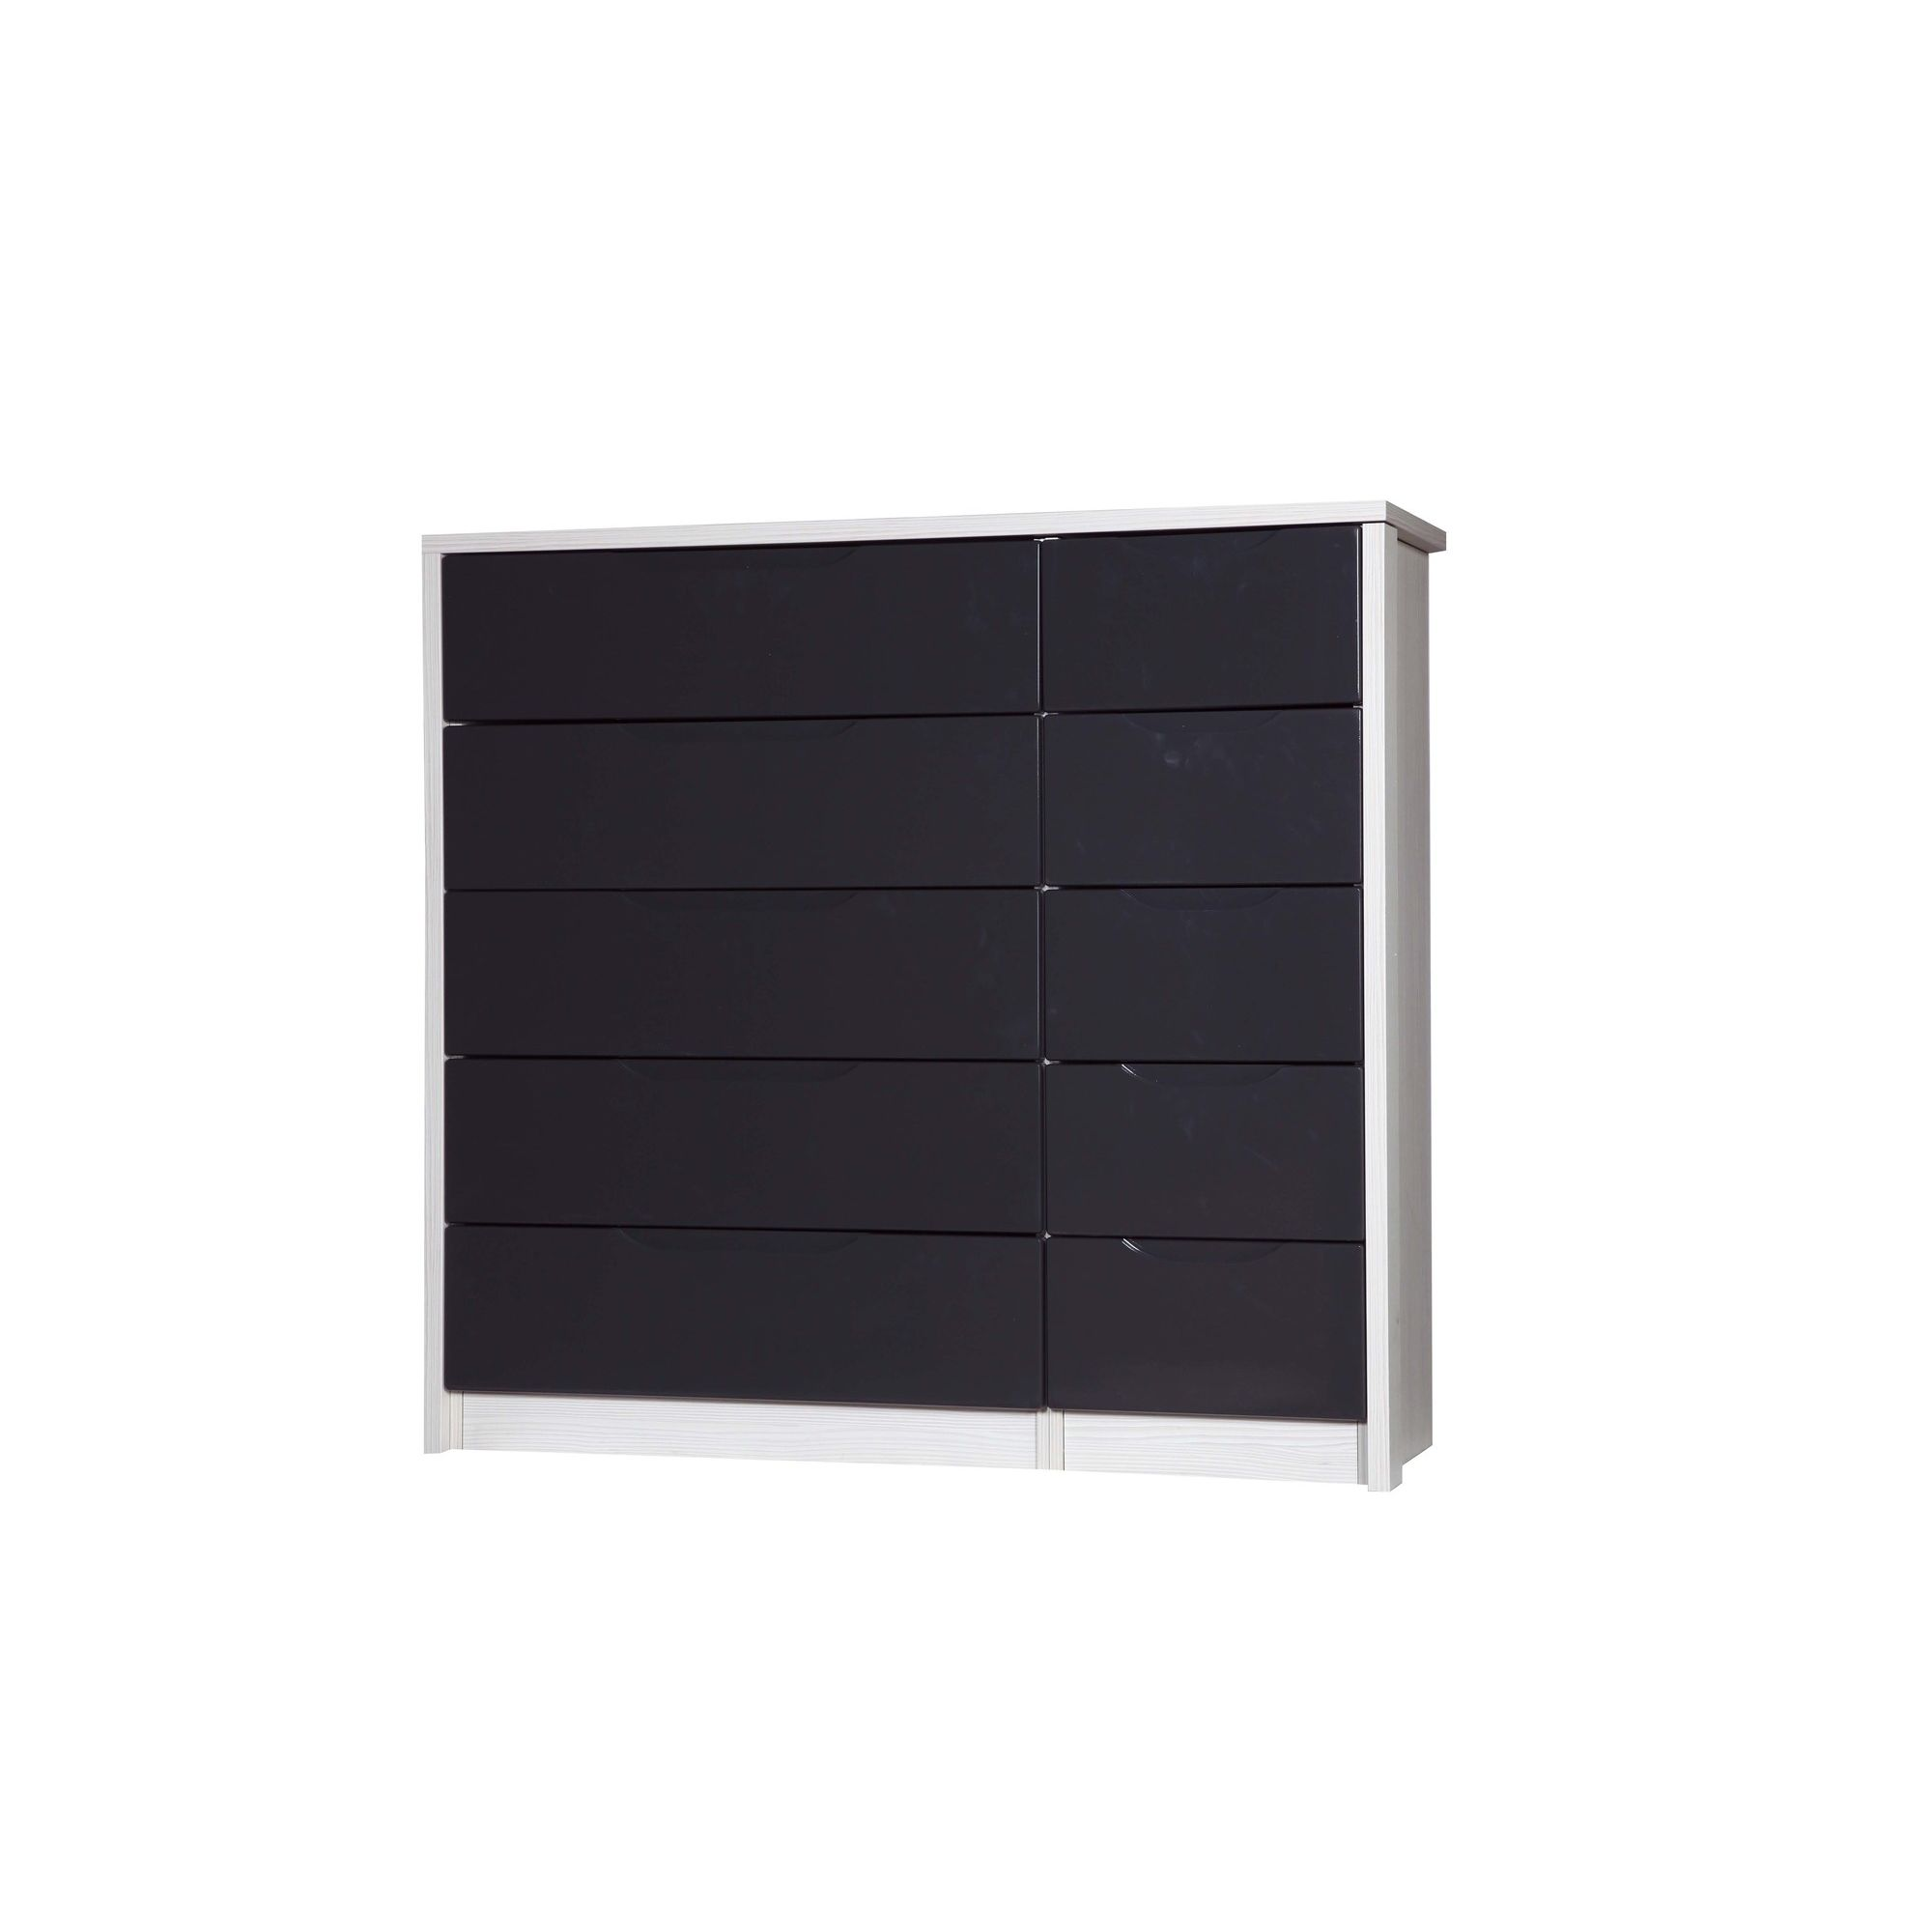 Alto Furniture Avola 10 Drawer Double Chest - White Avola Carcass With Grey Gloss at Tesco Direct